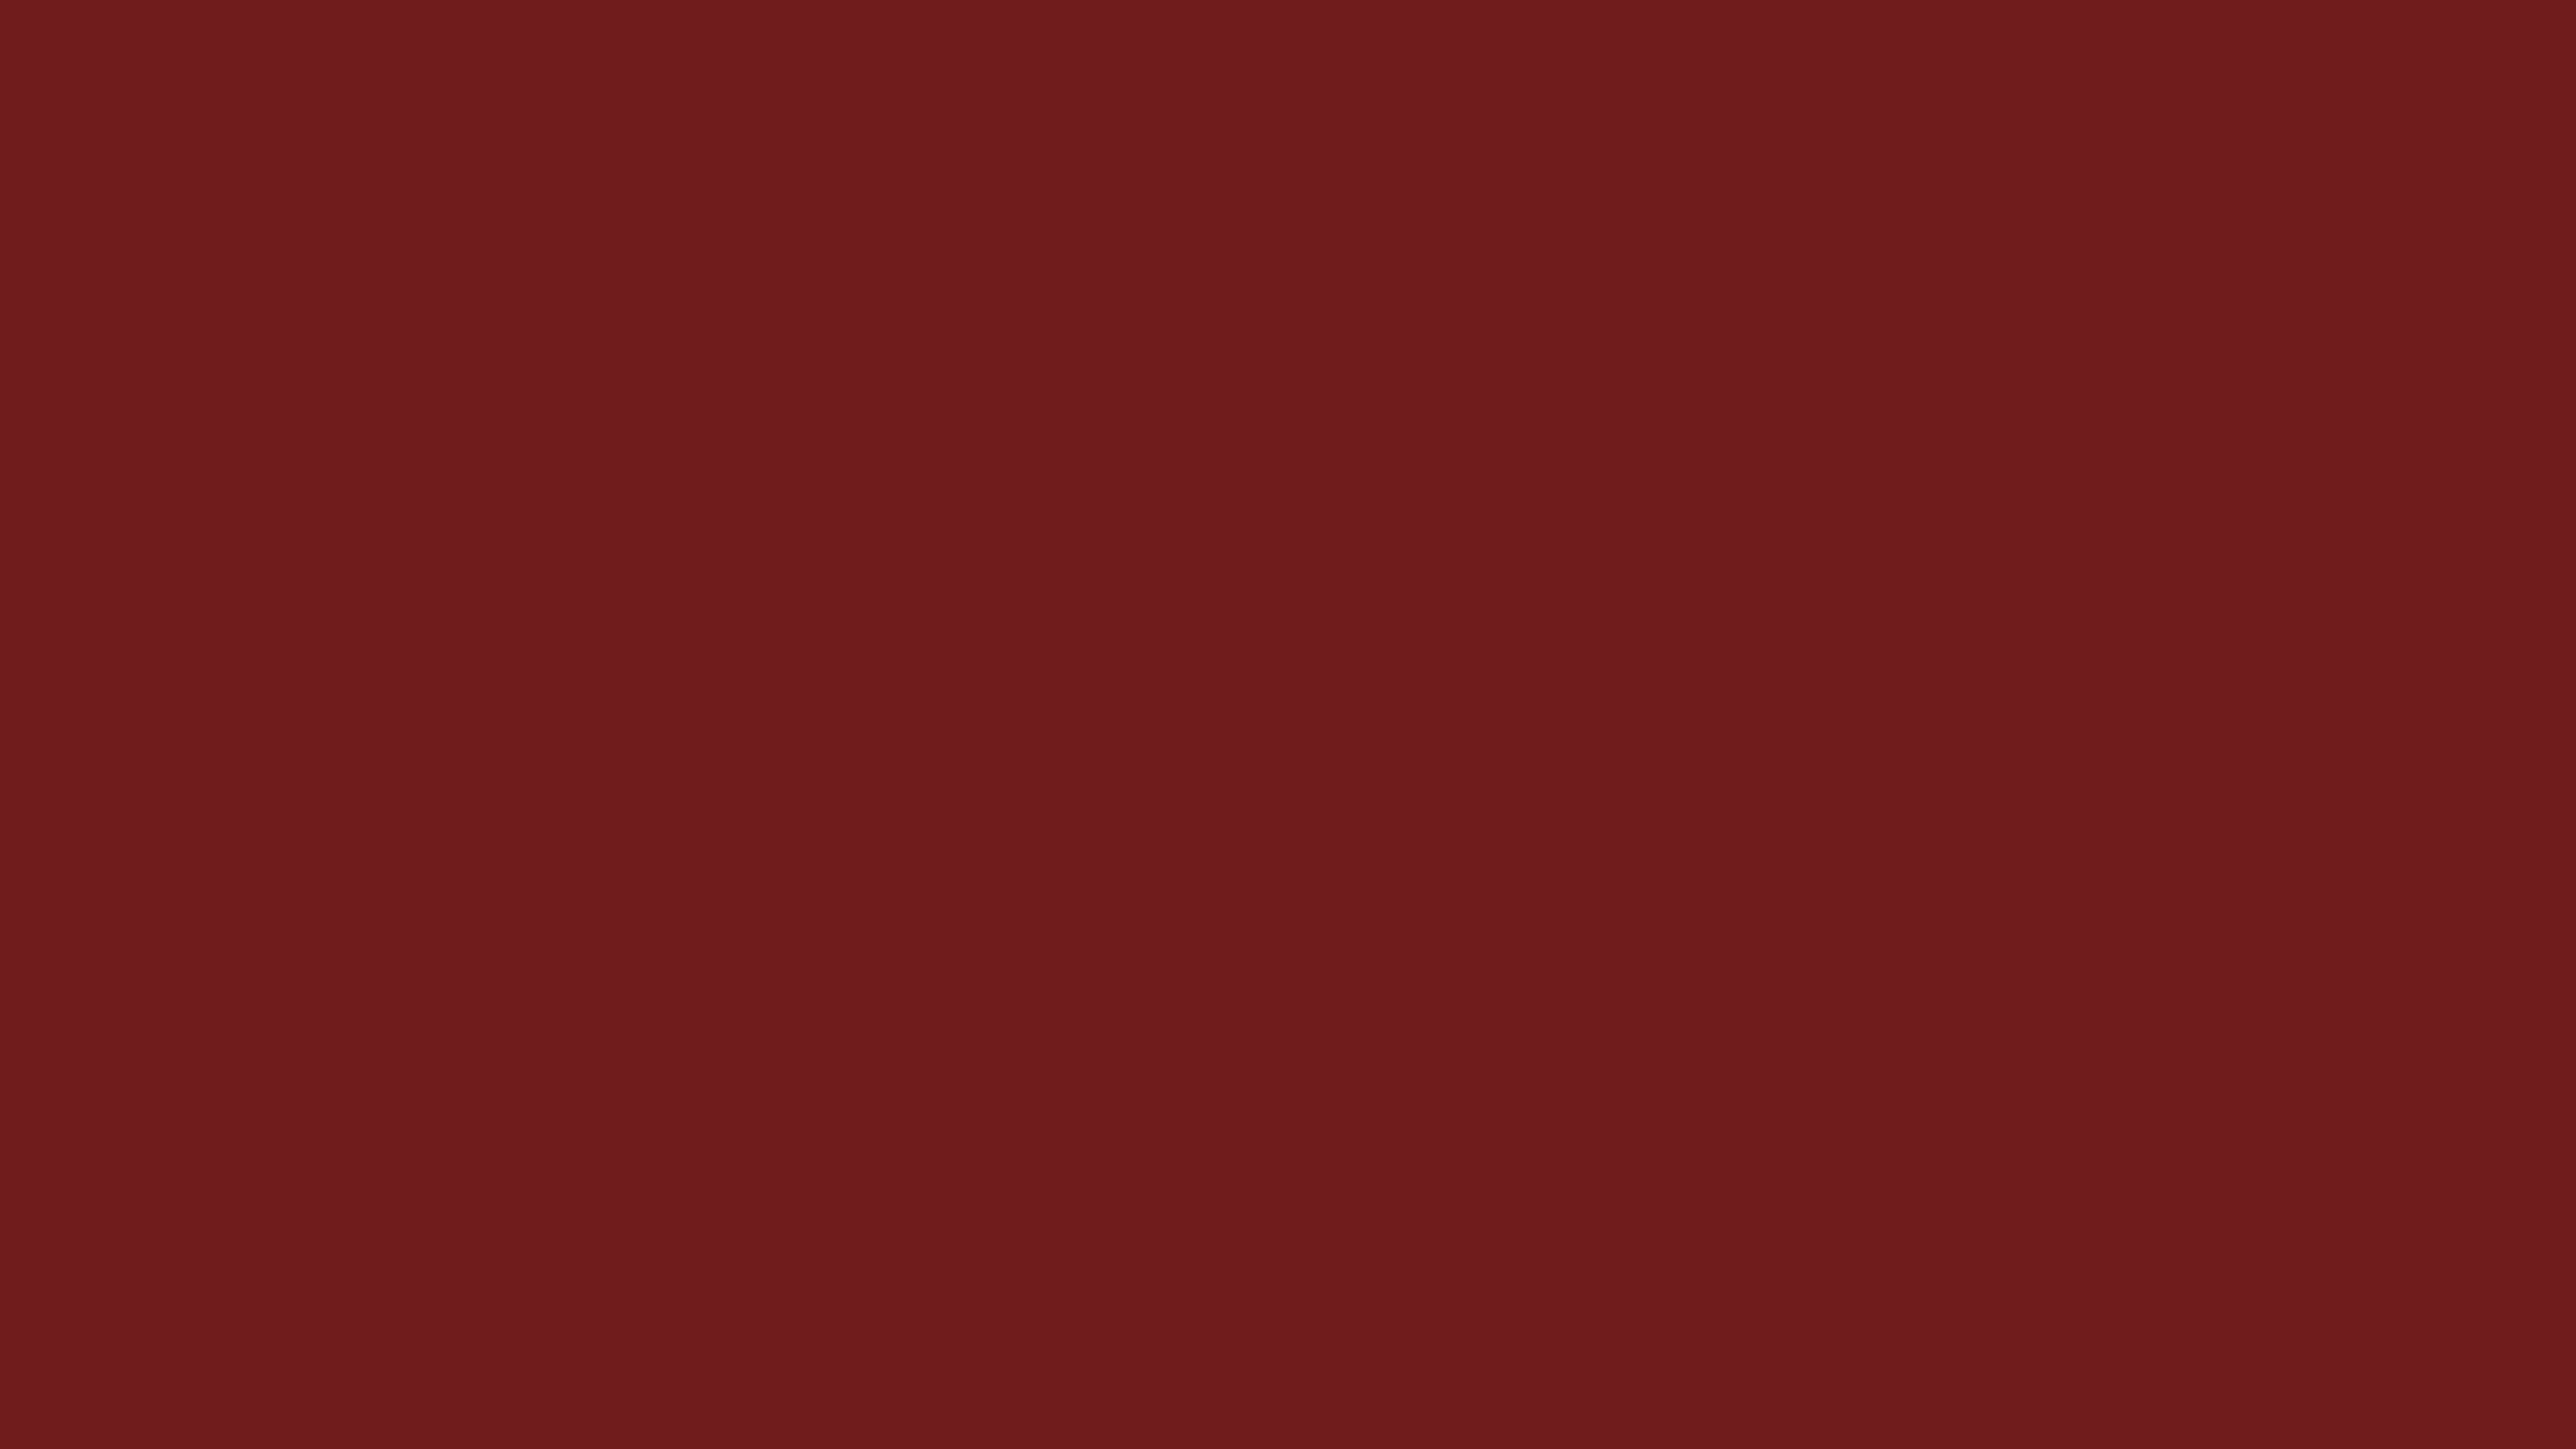 4096x2304 Prune Solid Color Background